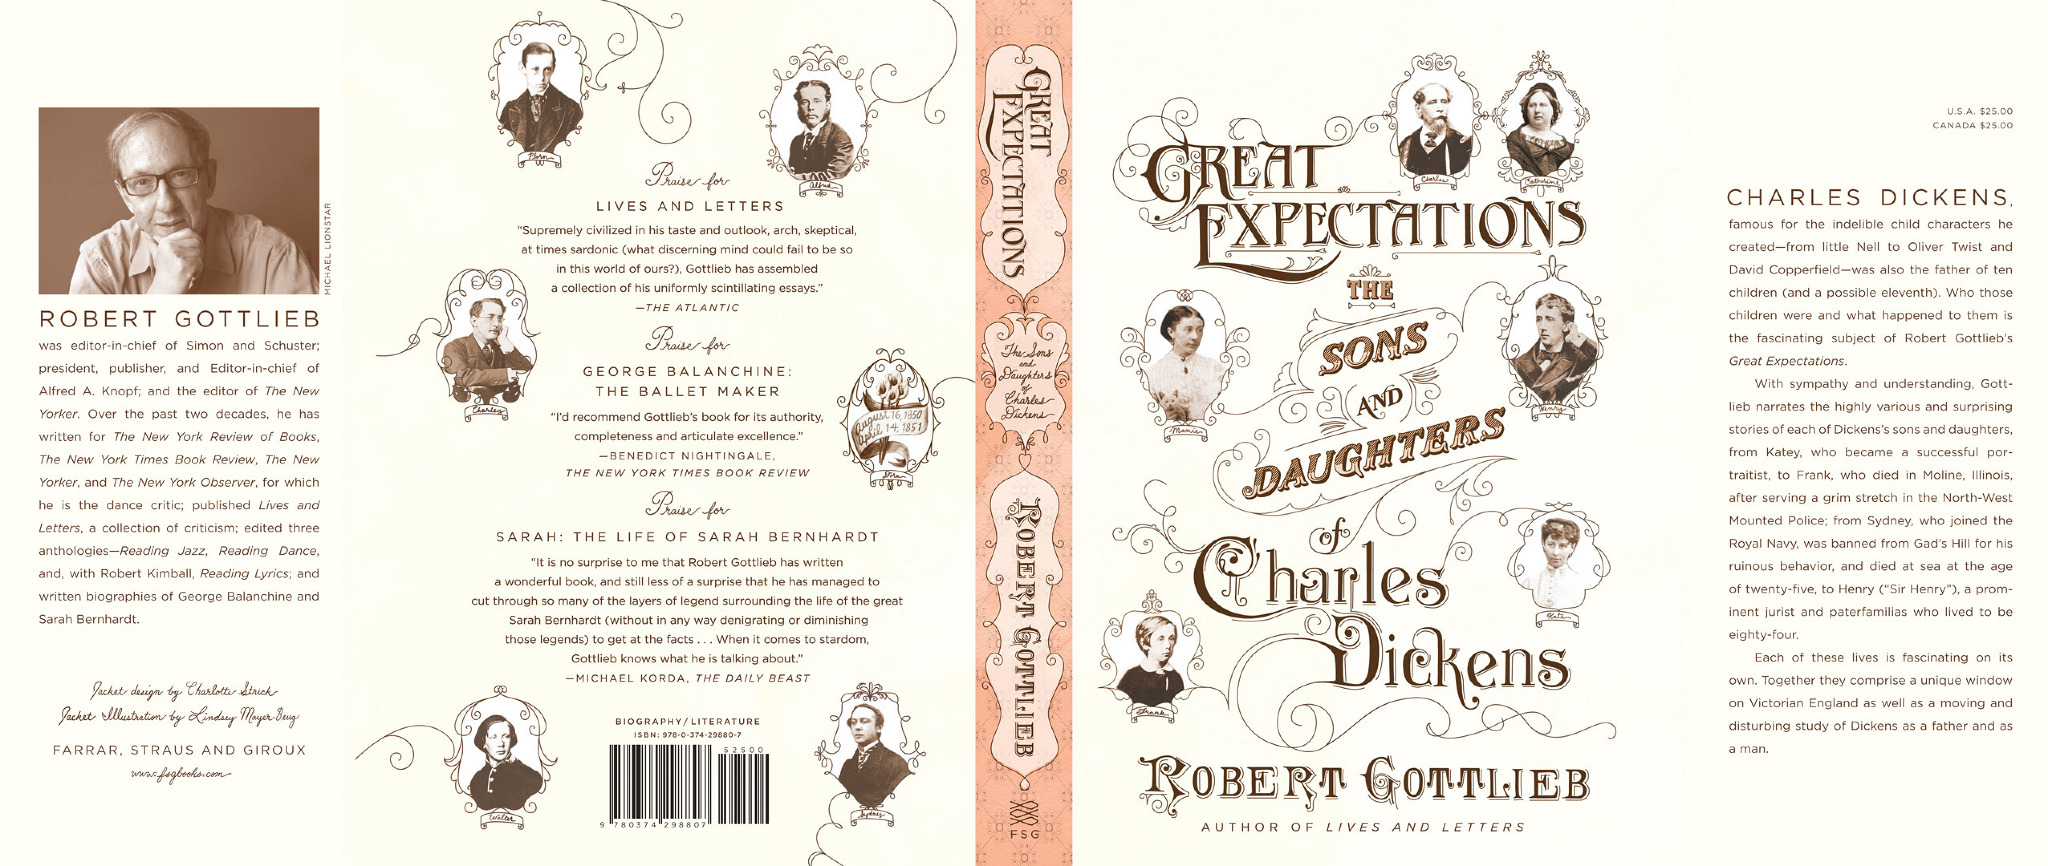 Great Expectations The Sons And Daughters Of Charles Dickens Lmbw